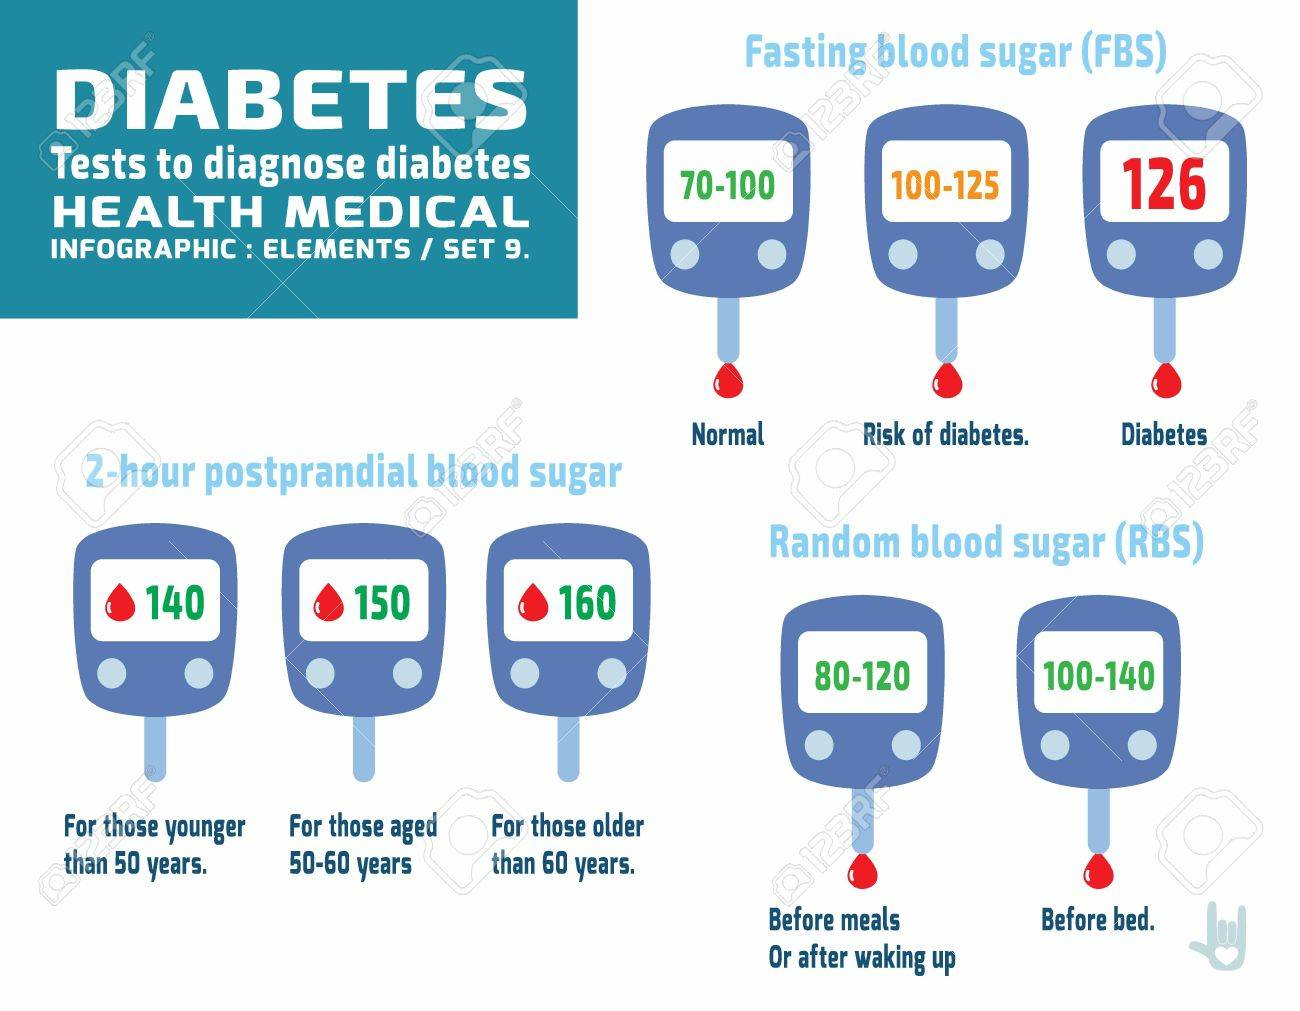 diabetic set.Glucometer graphics.infographic elements.health care concept.flat cute cartoon design illustration.isolated on white background. - 53903264